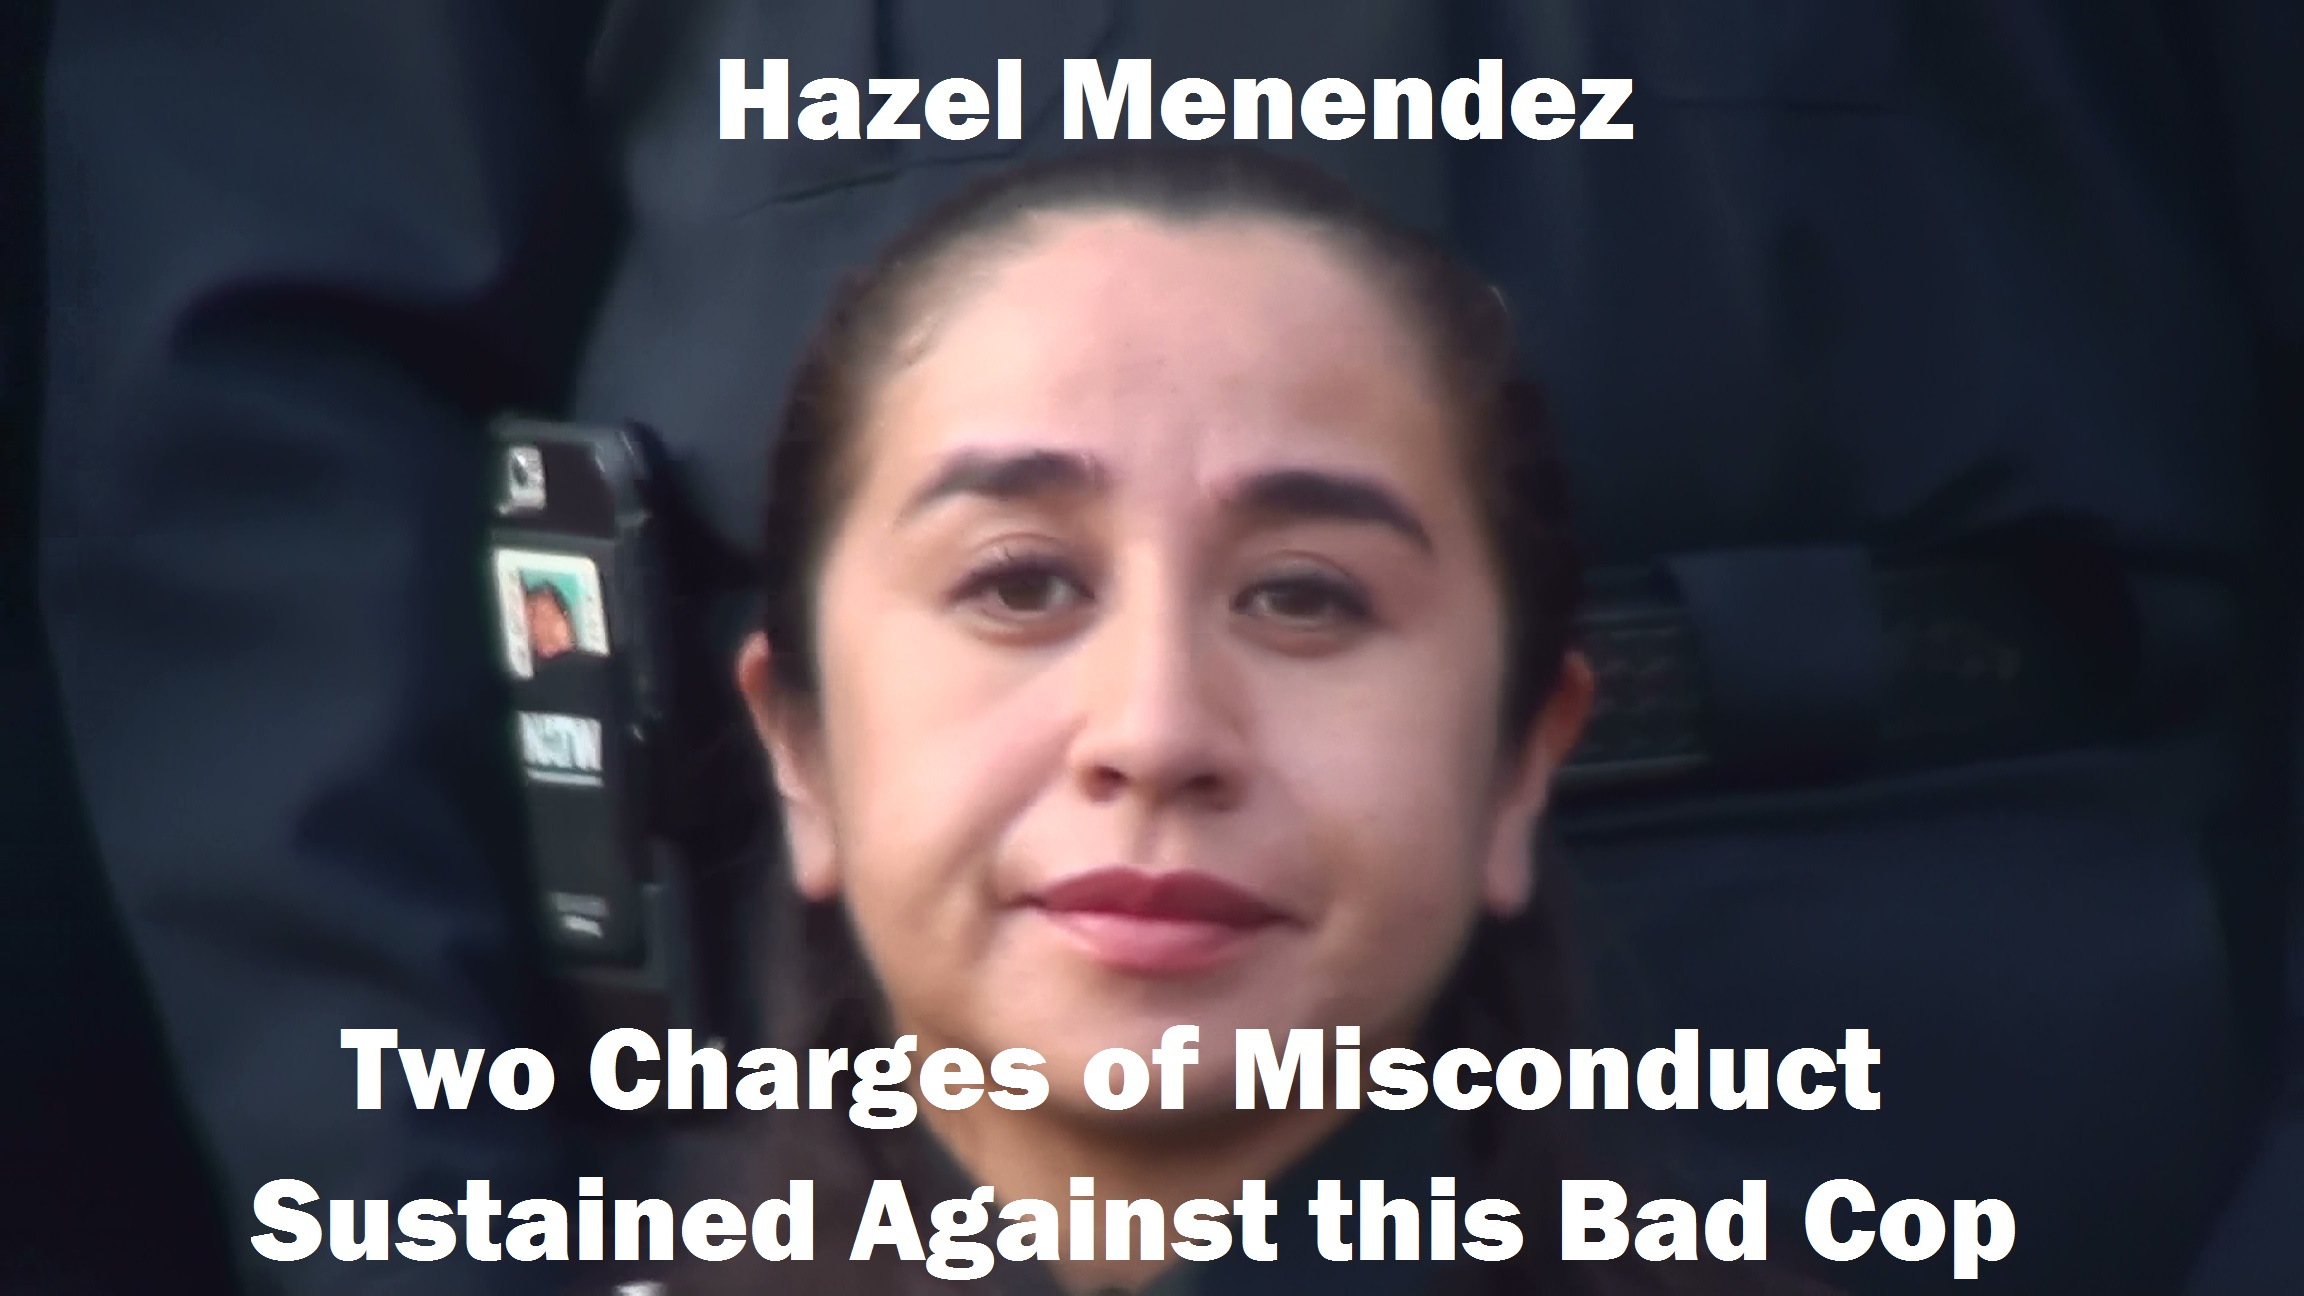 Menendez Hazel Photo Day Headshot 09-22-2015 - Annotated